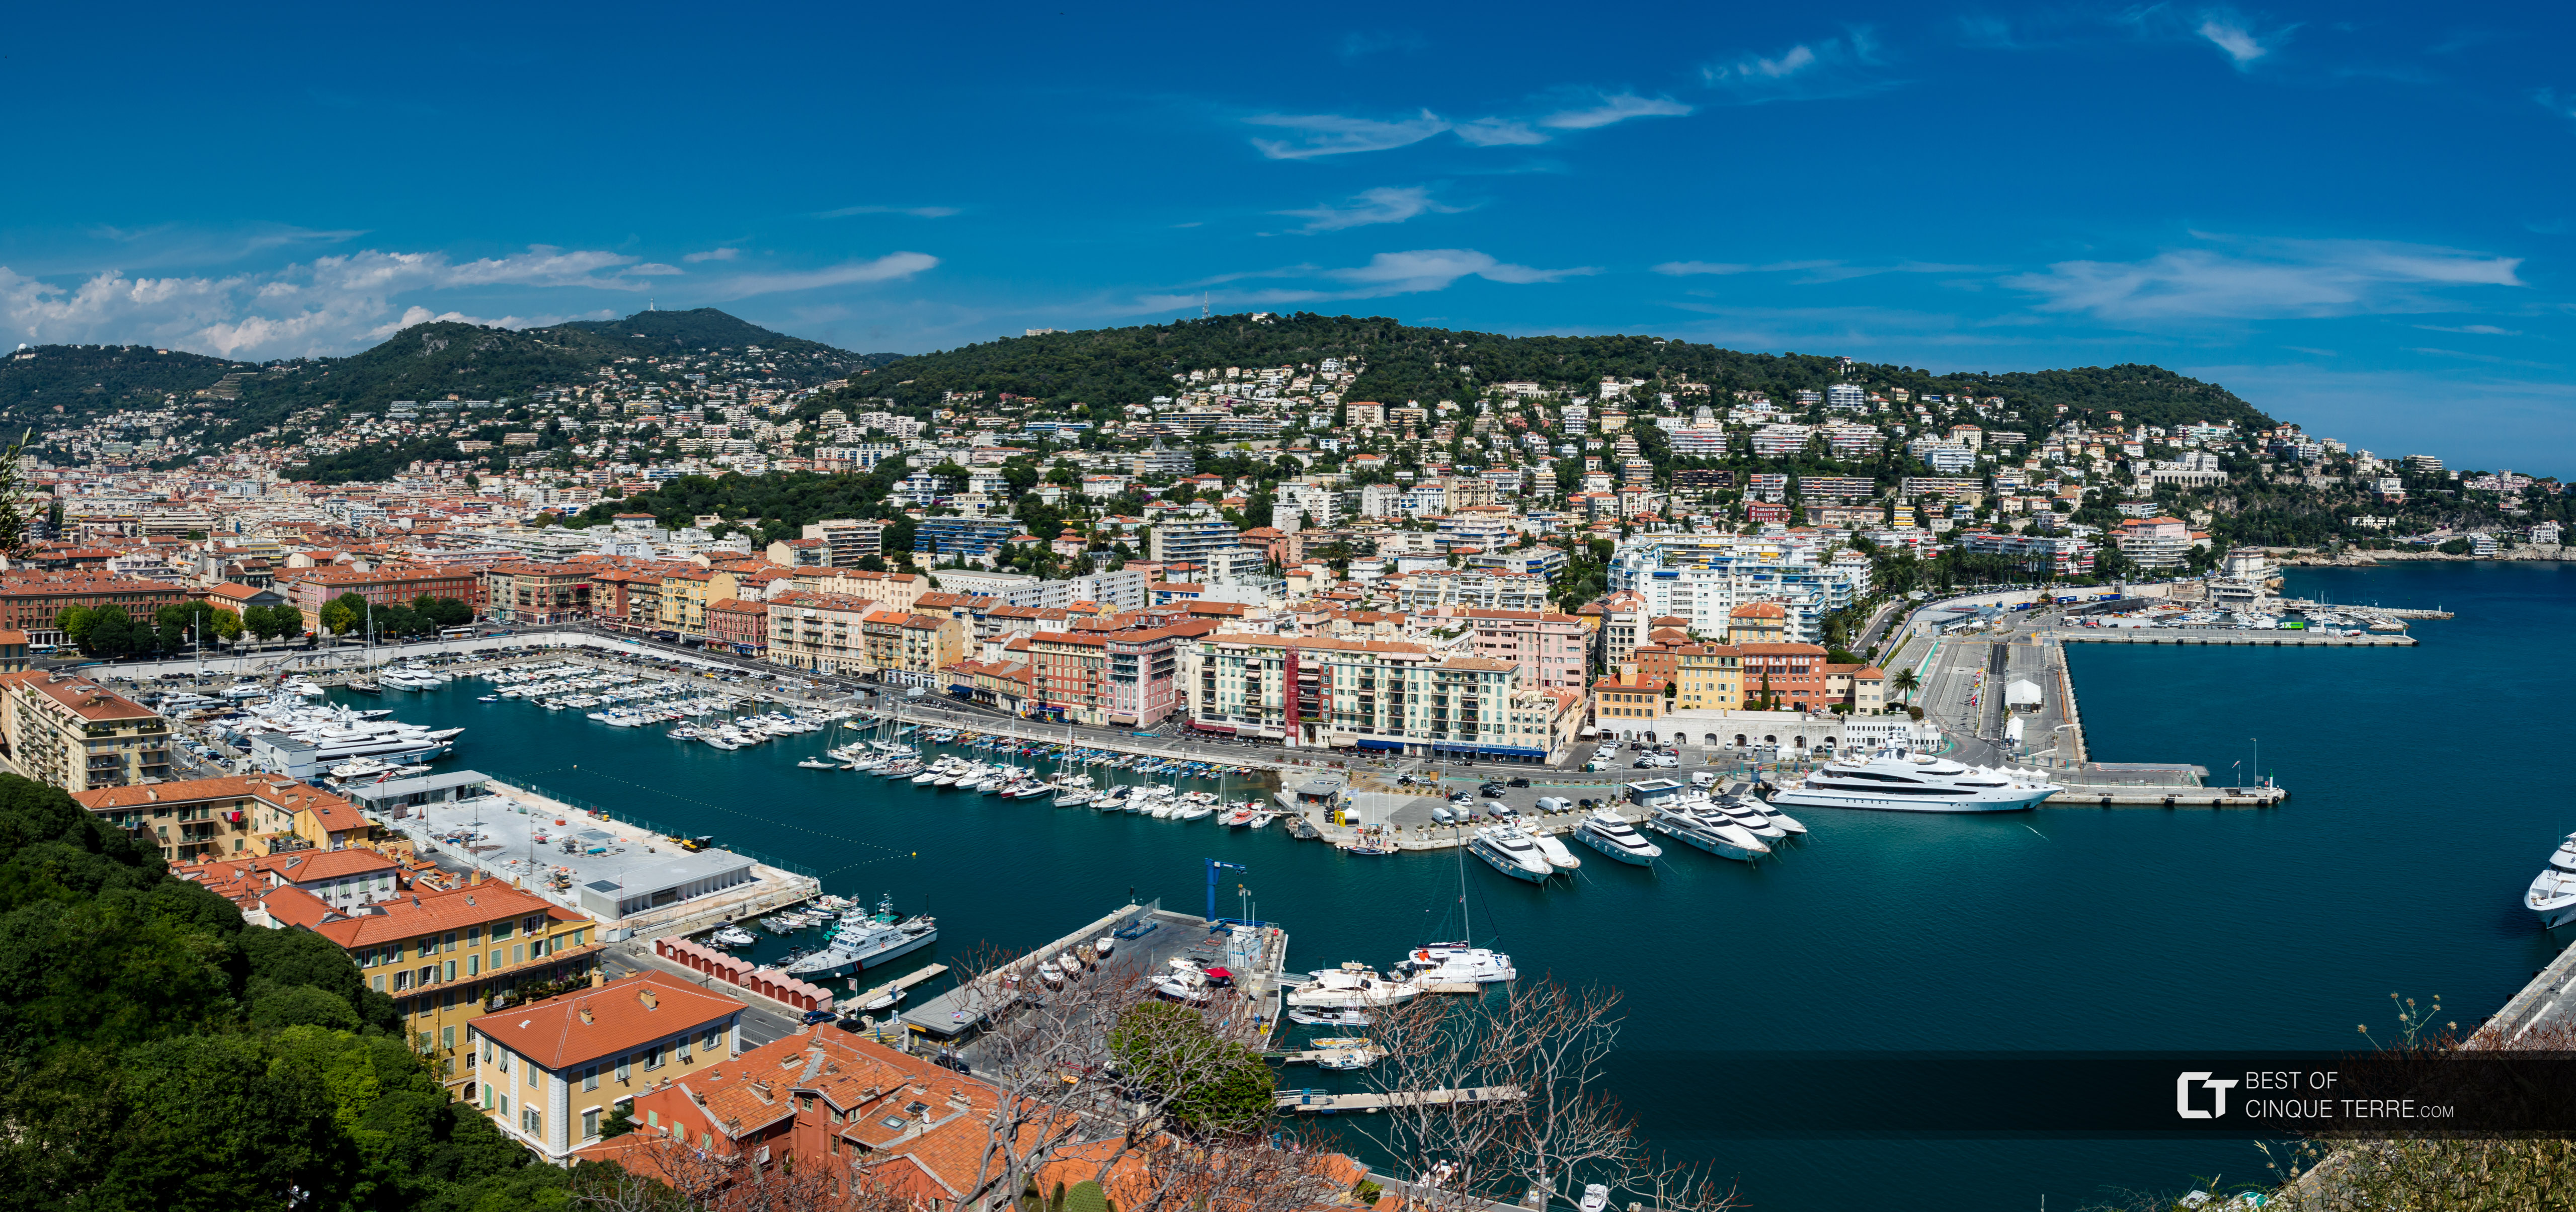 Port Lympia from the Castle Hill viewpoint, Nice, France